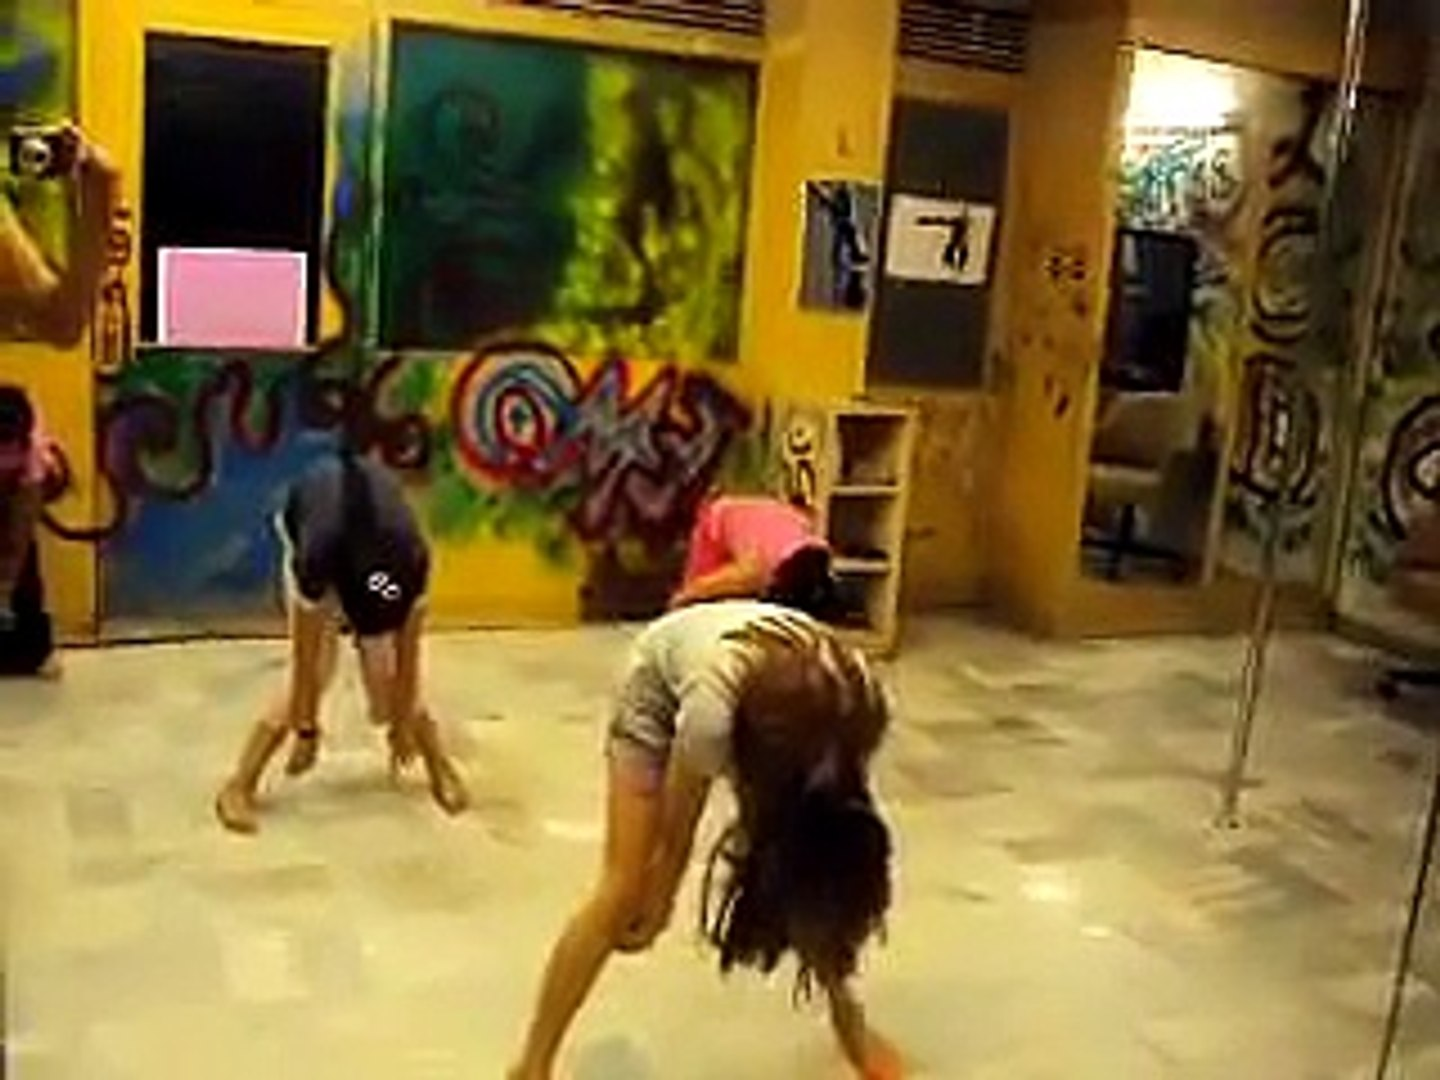 Indian Girls Dancing on Song Amplifire